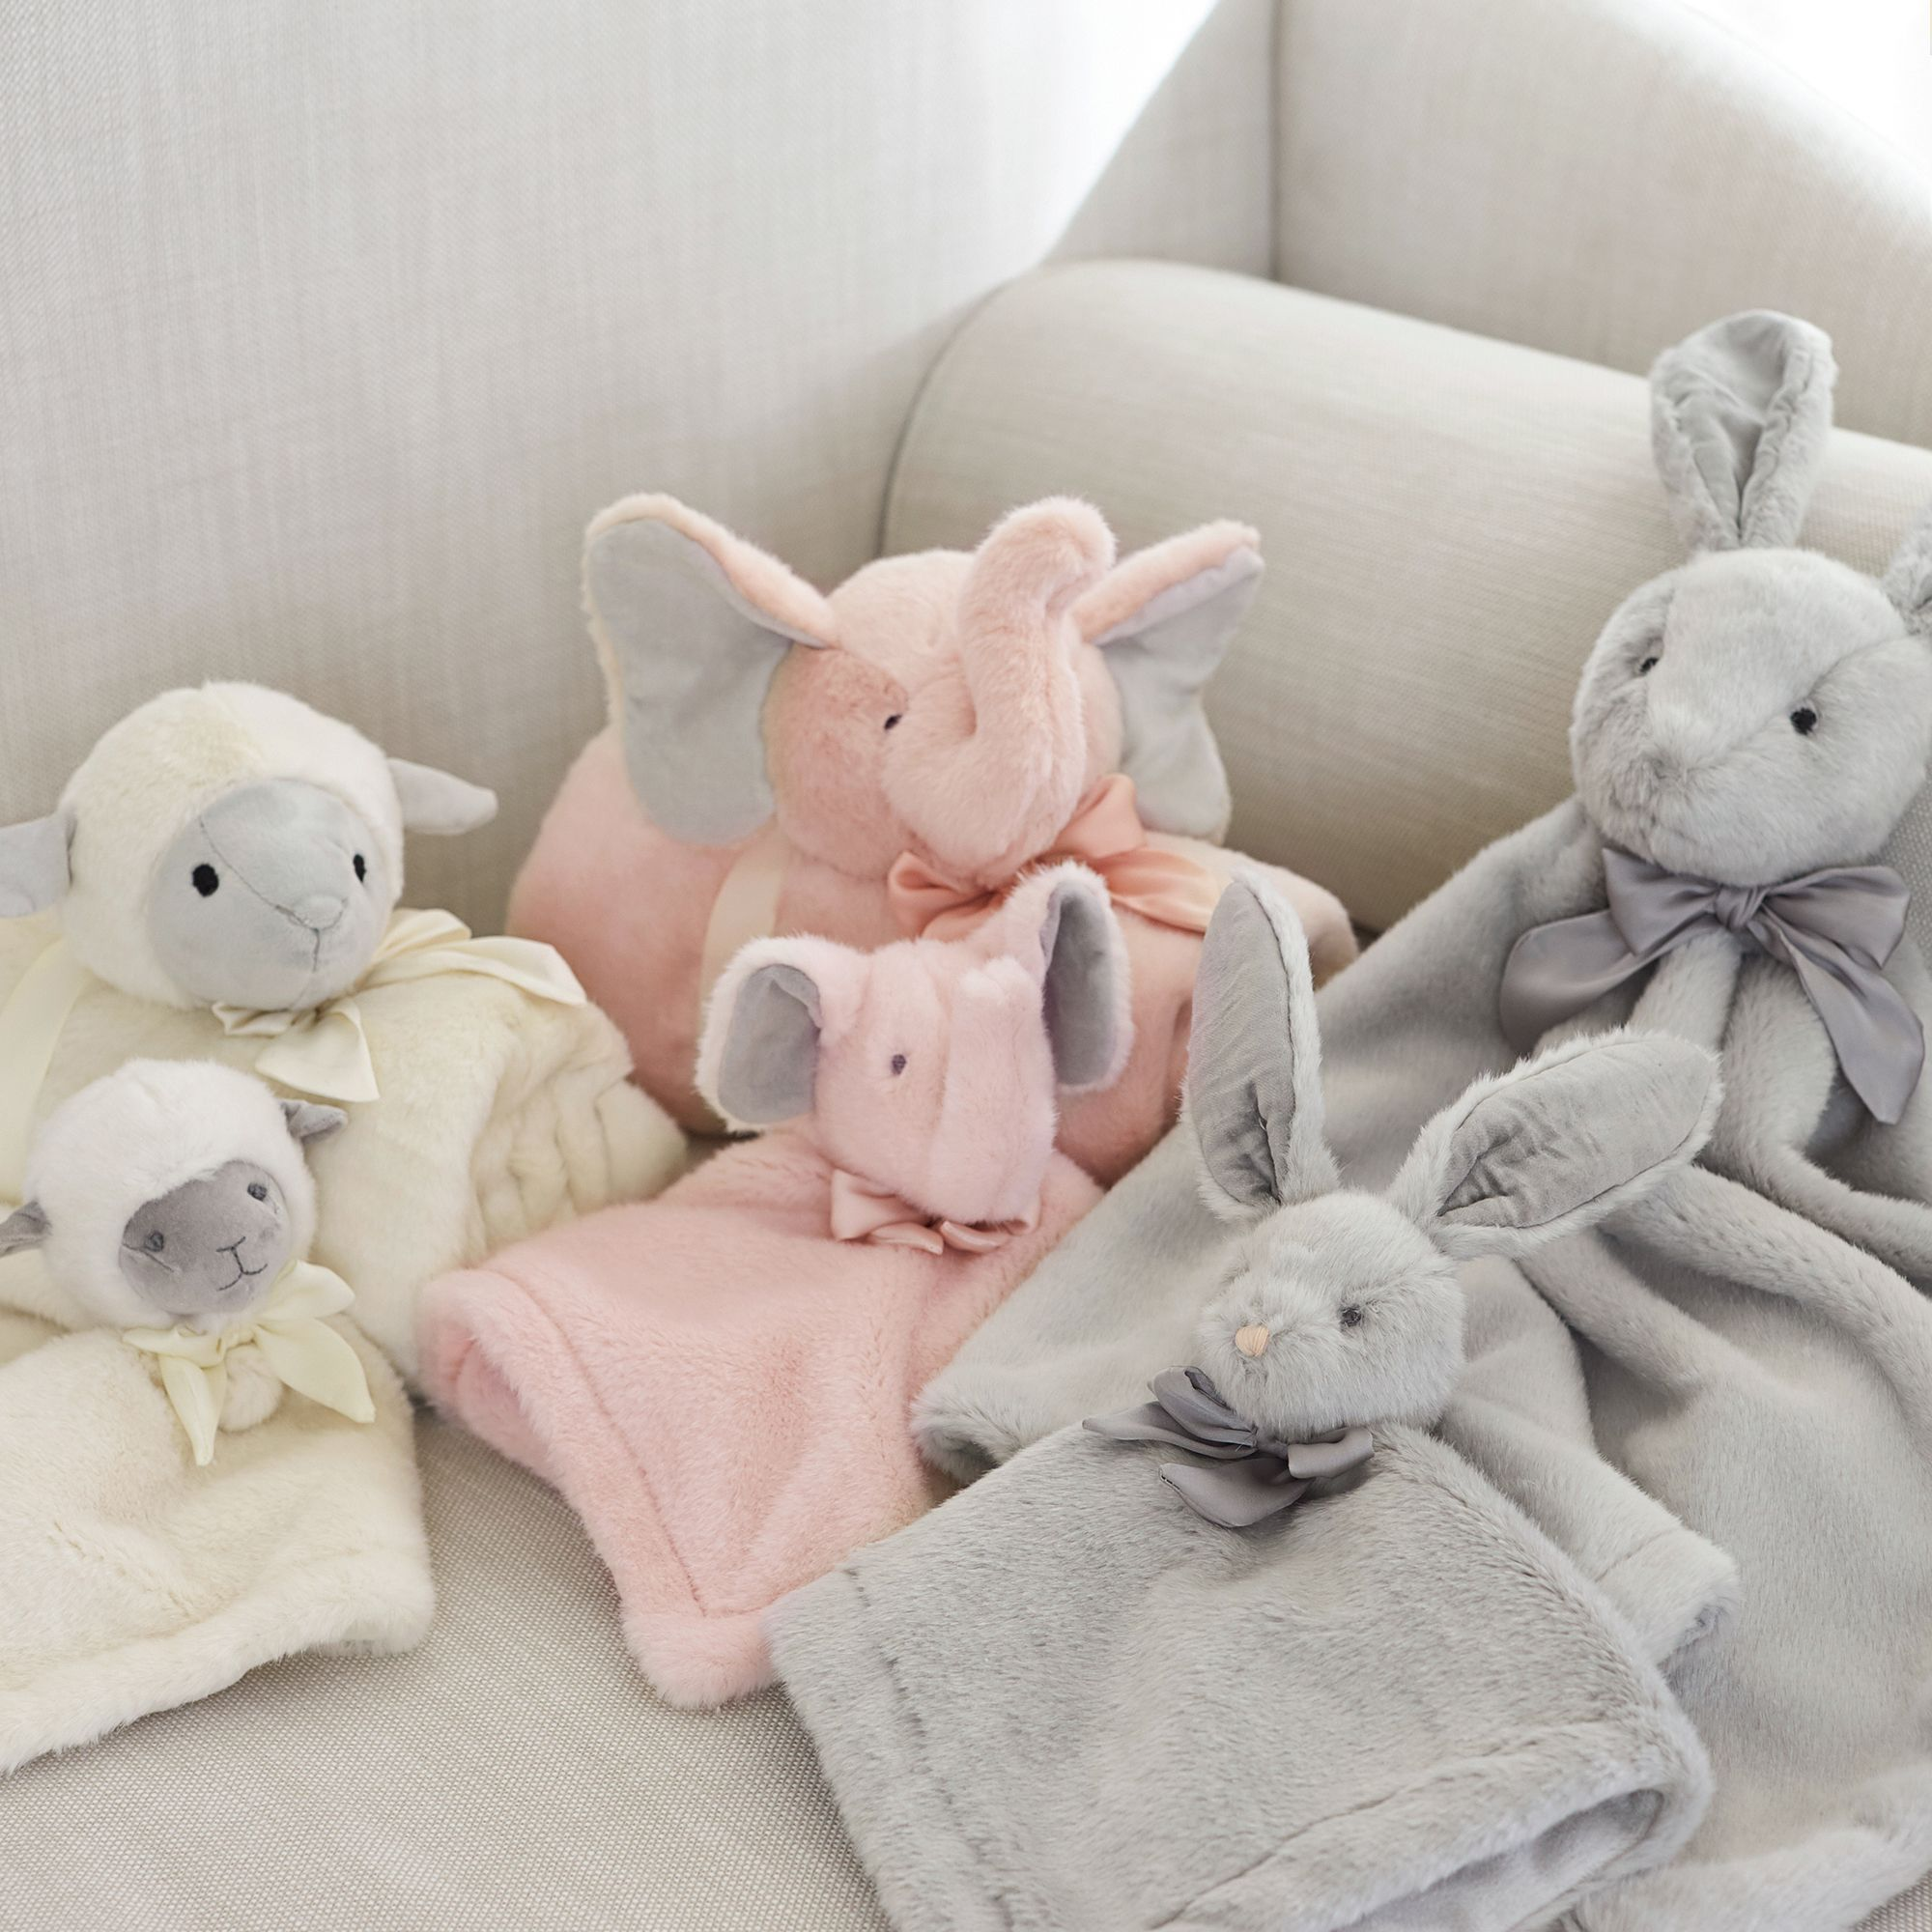 The Monique Lhuillier for Pottery Barn Kids Collection